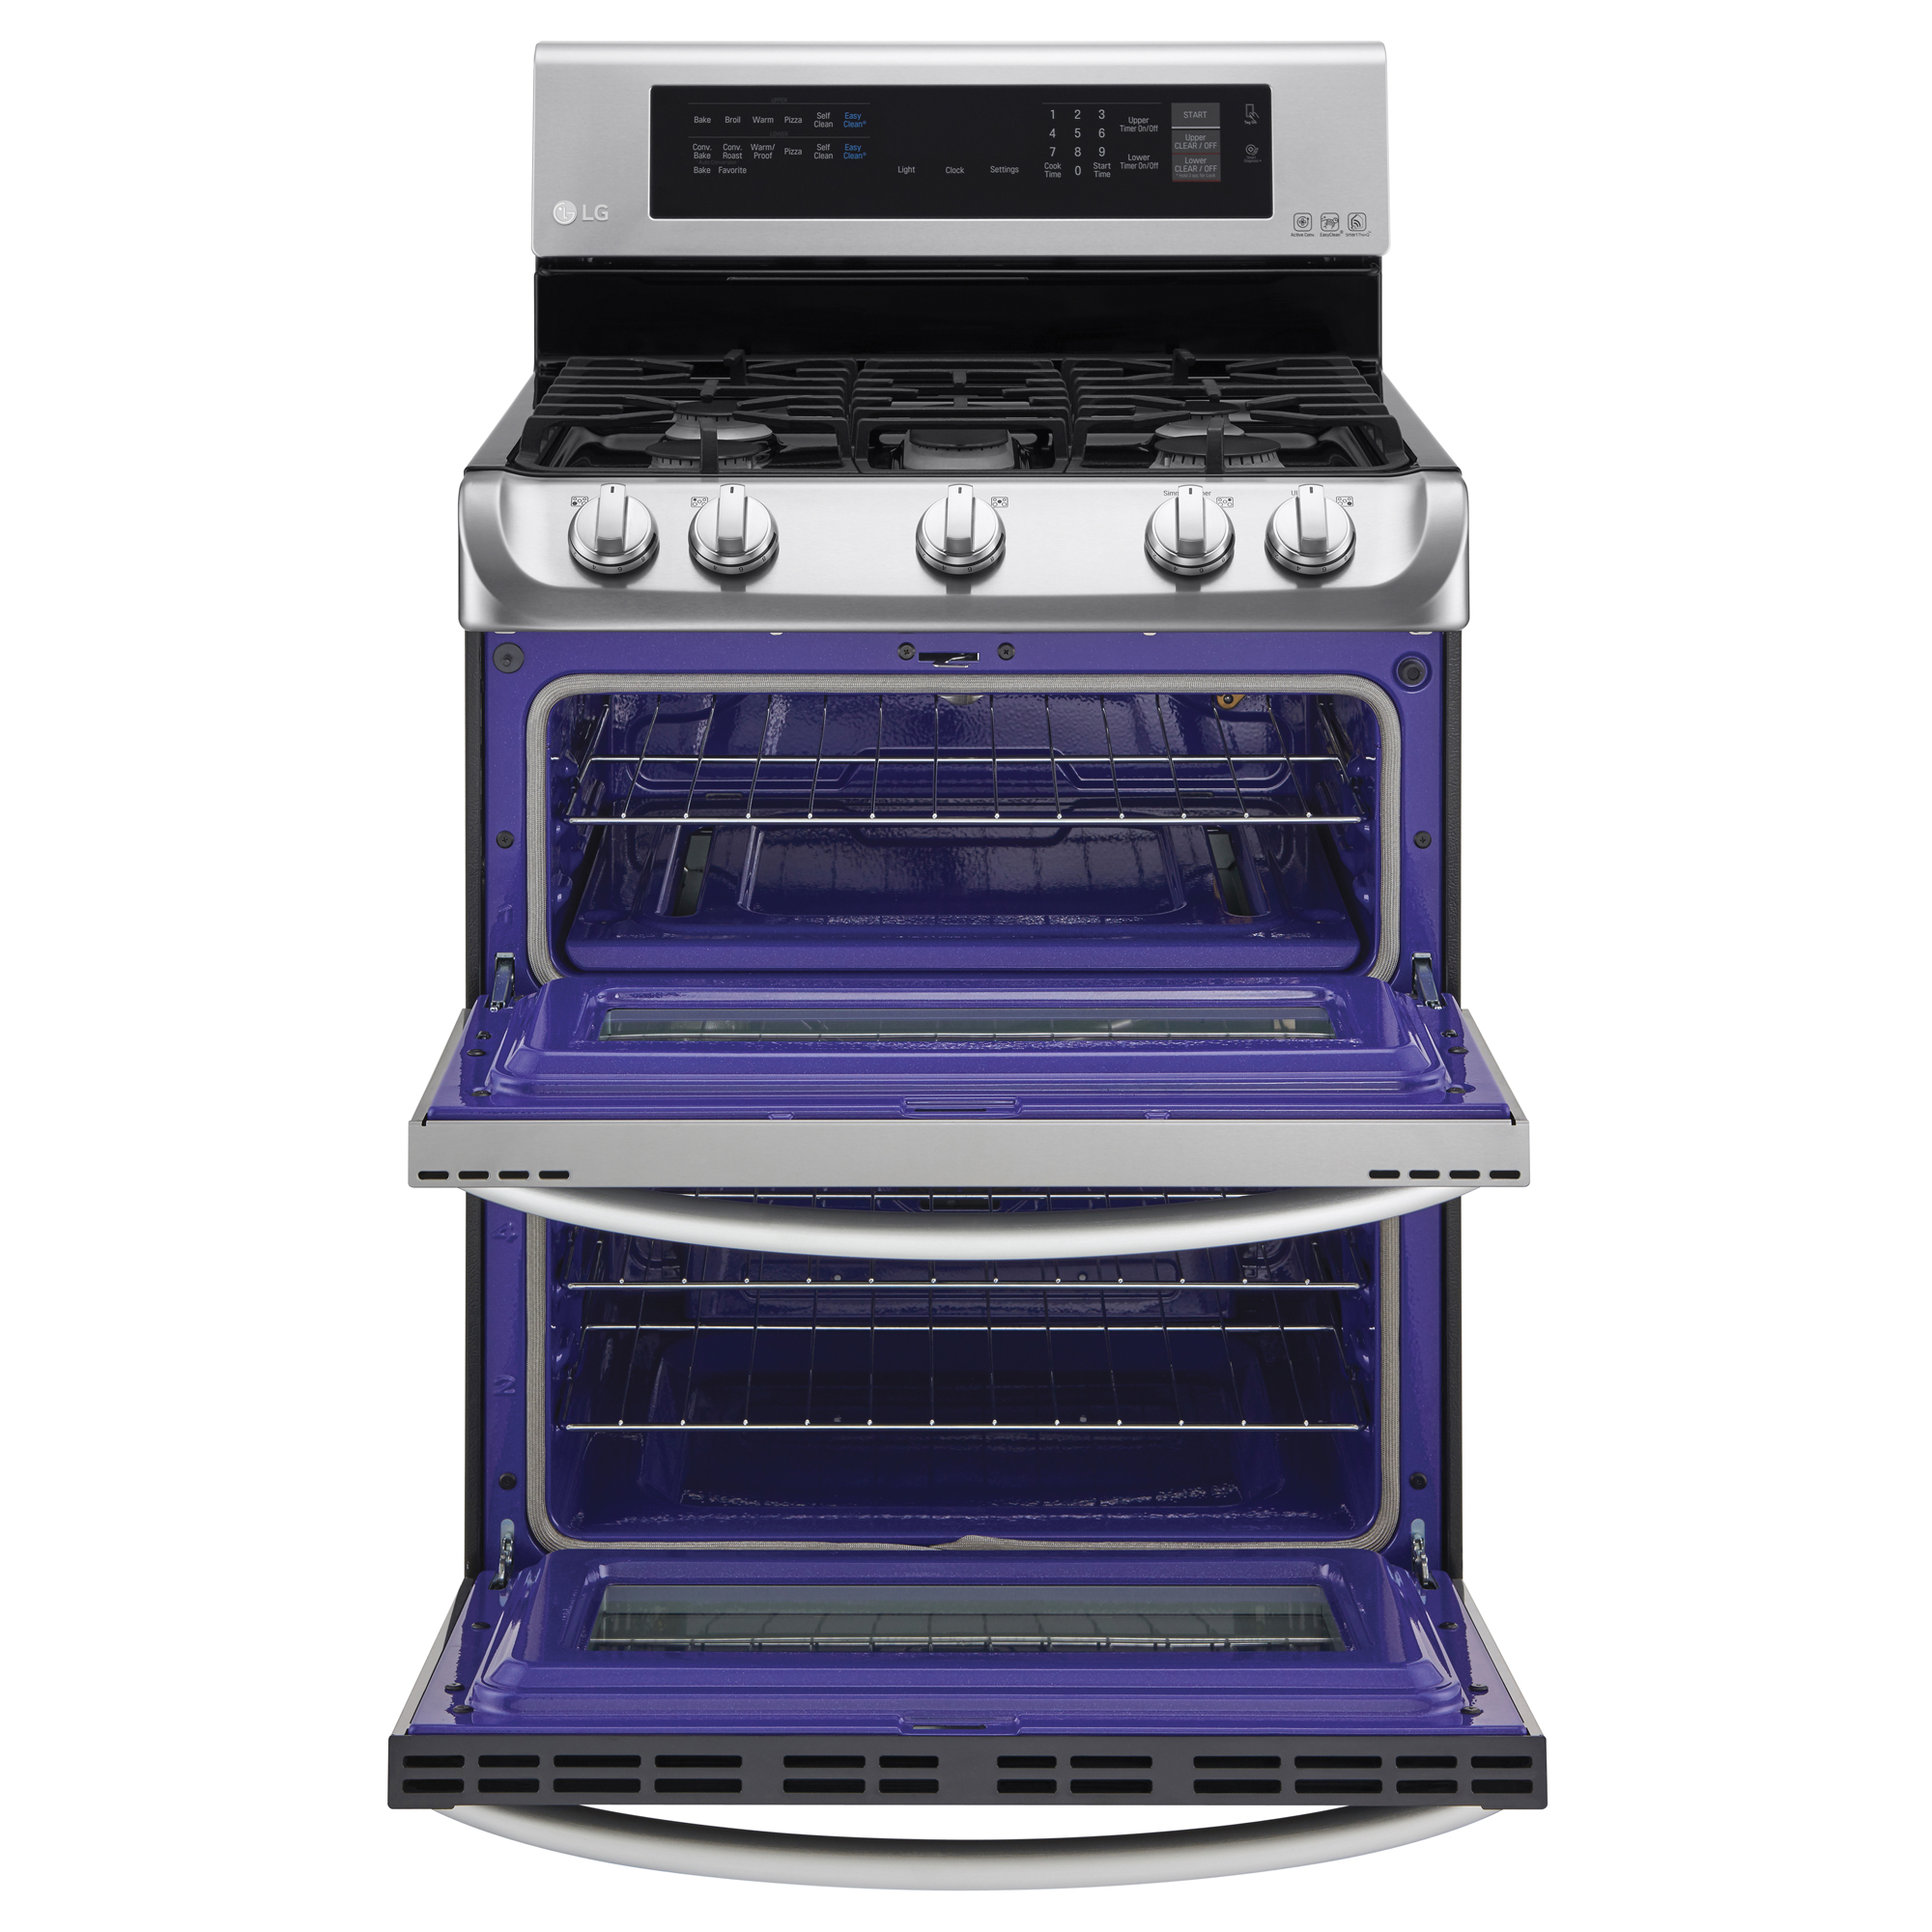 LG LDG4313ST 6.9 cu. ft. Double-Oven Gas Range w/ProBake Convection™ & EasyClean® – Stainless Steel